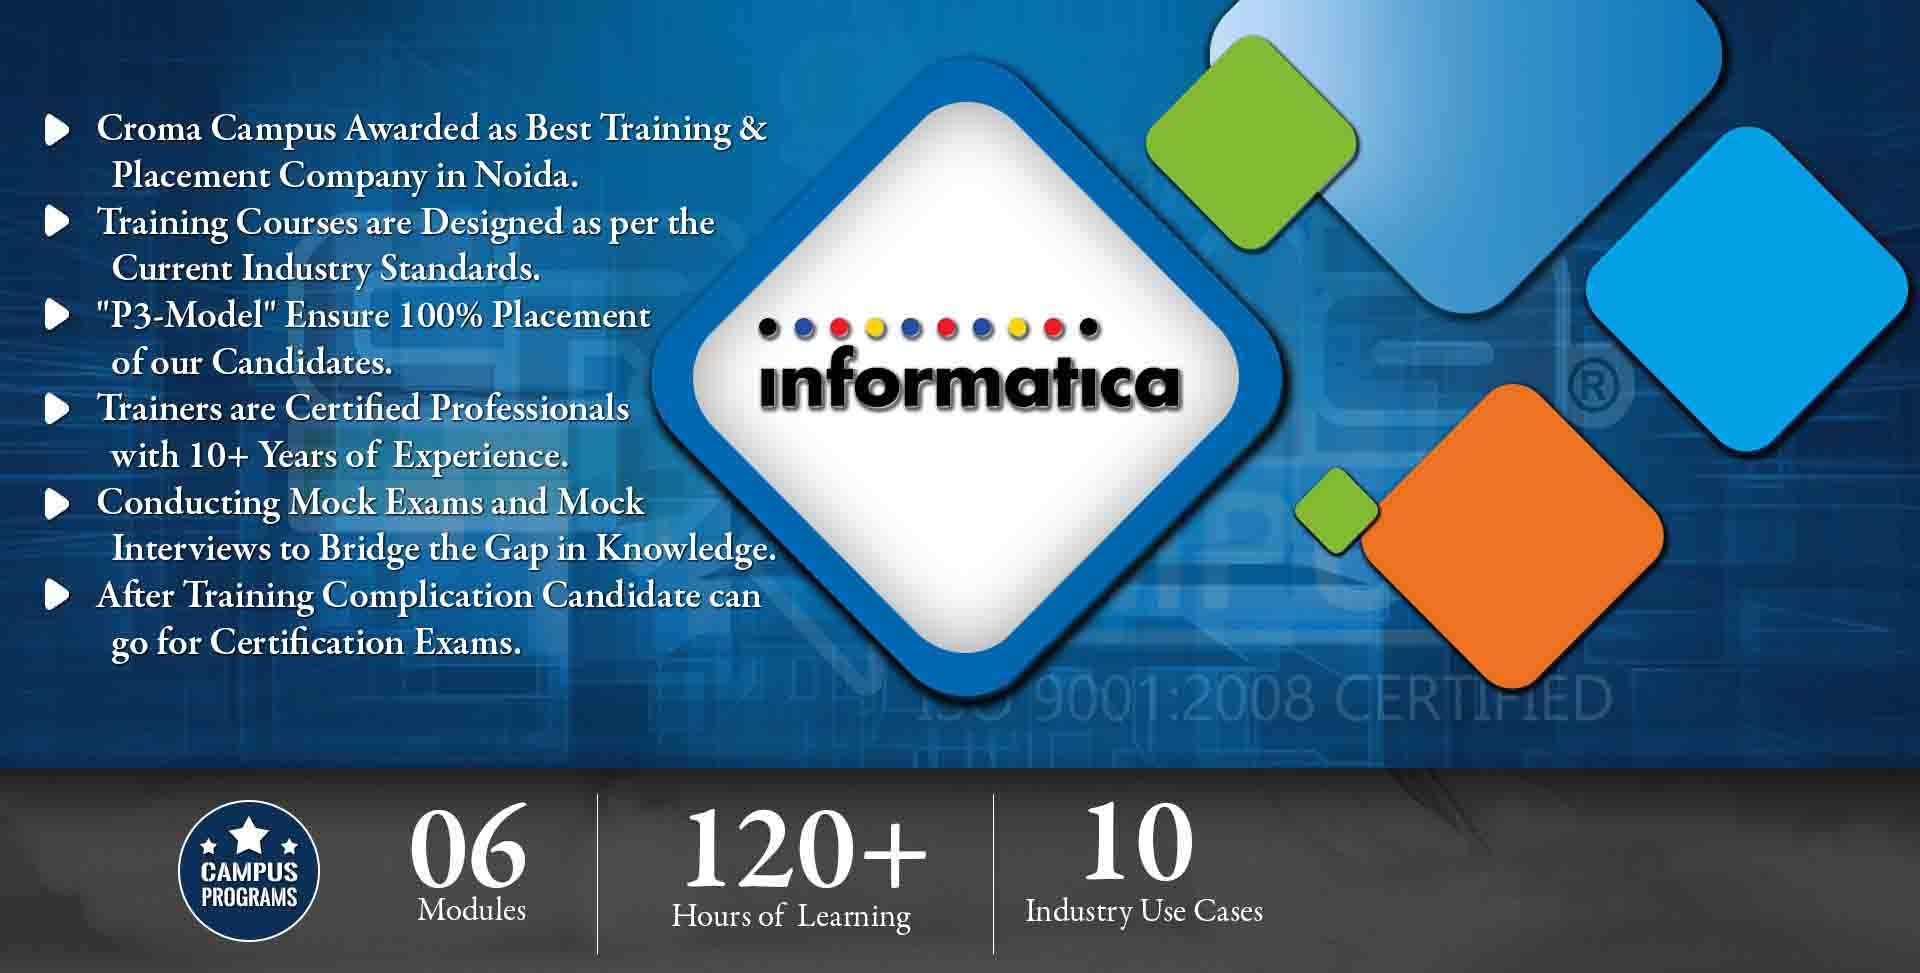 Informatica Training in Delhi NCR- Croma Campus